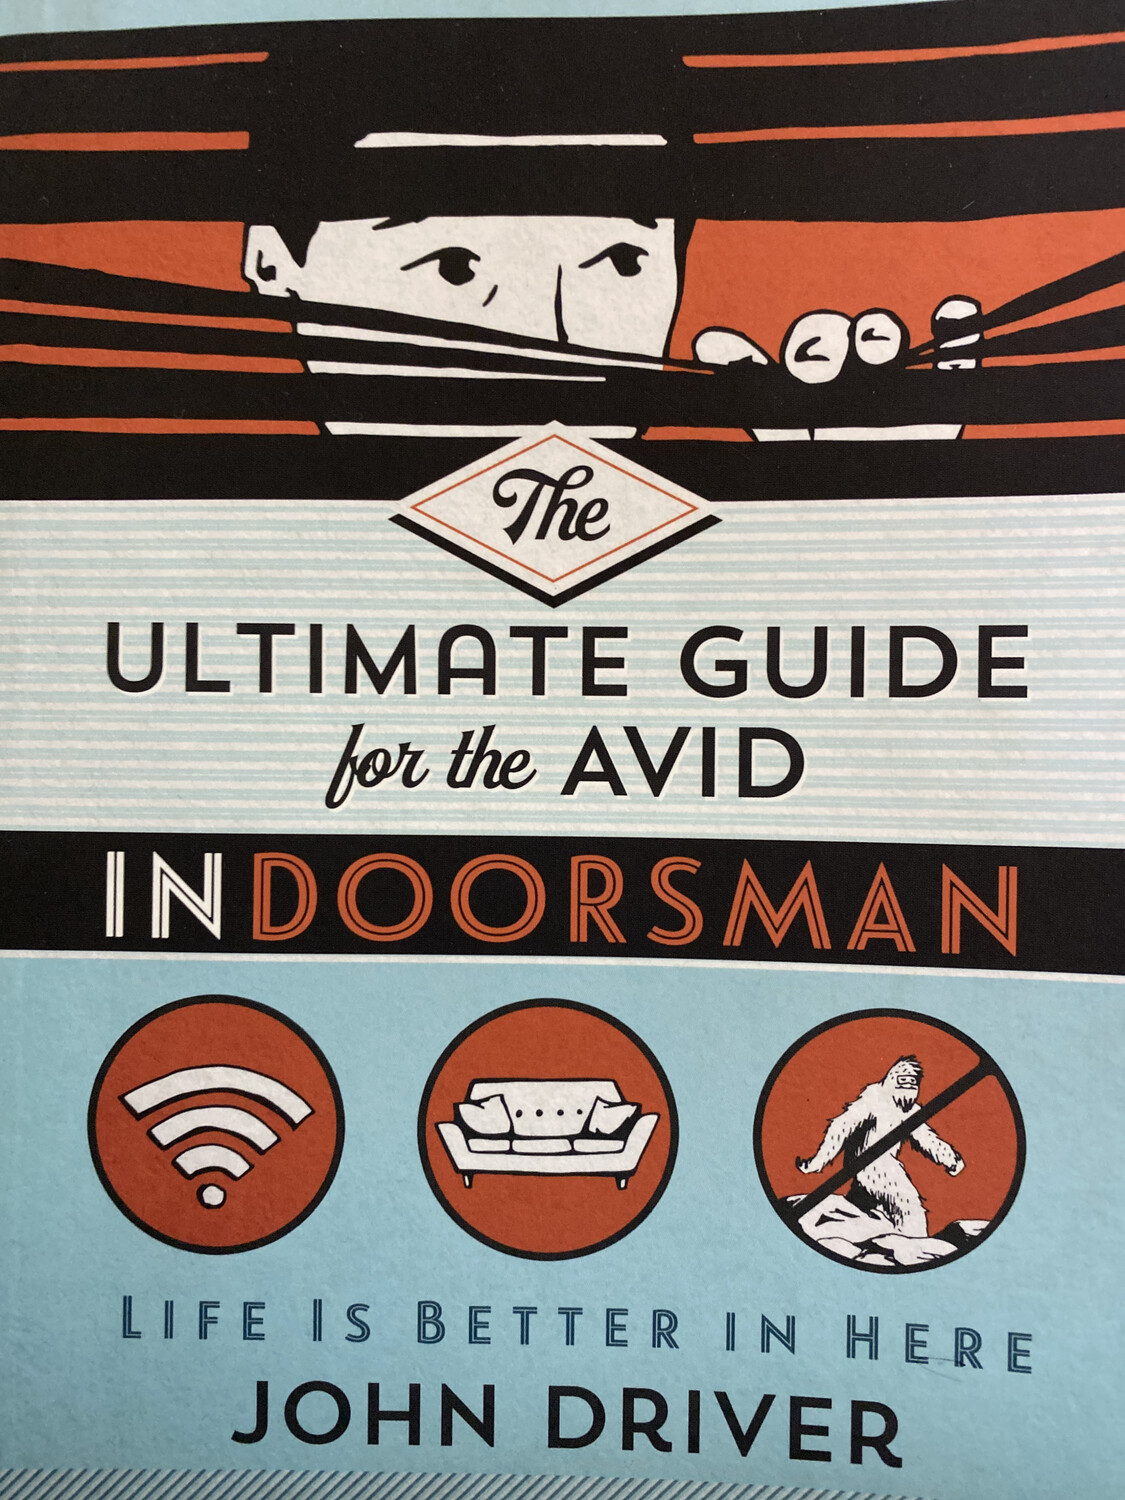 DRIVER, The Ultimate Guide For The Avid Indoorsman